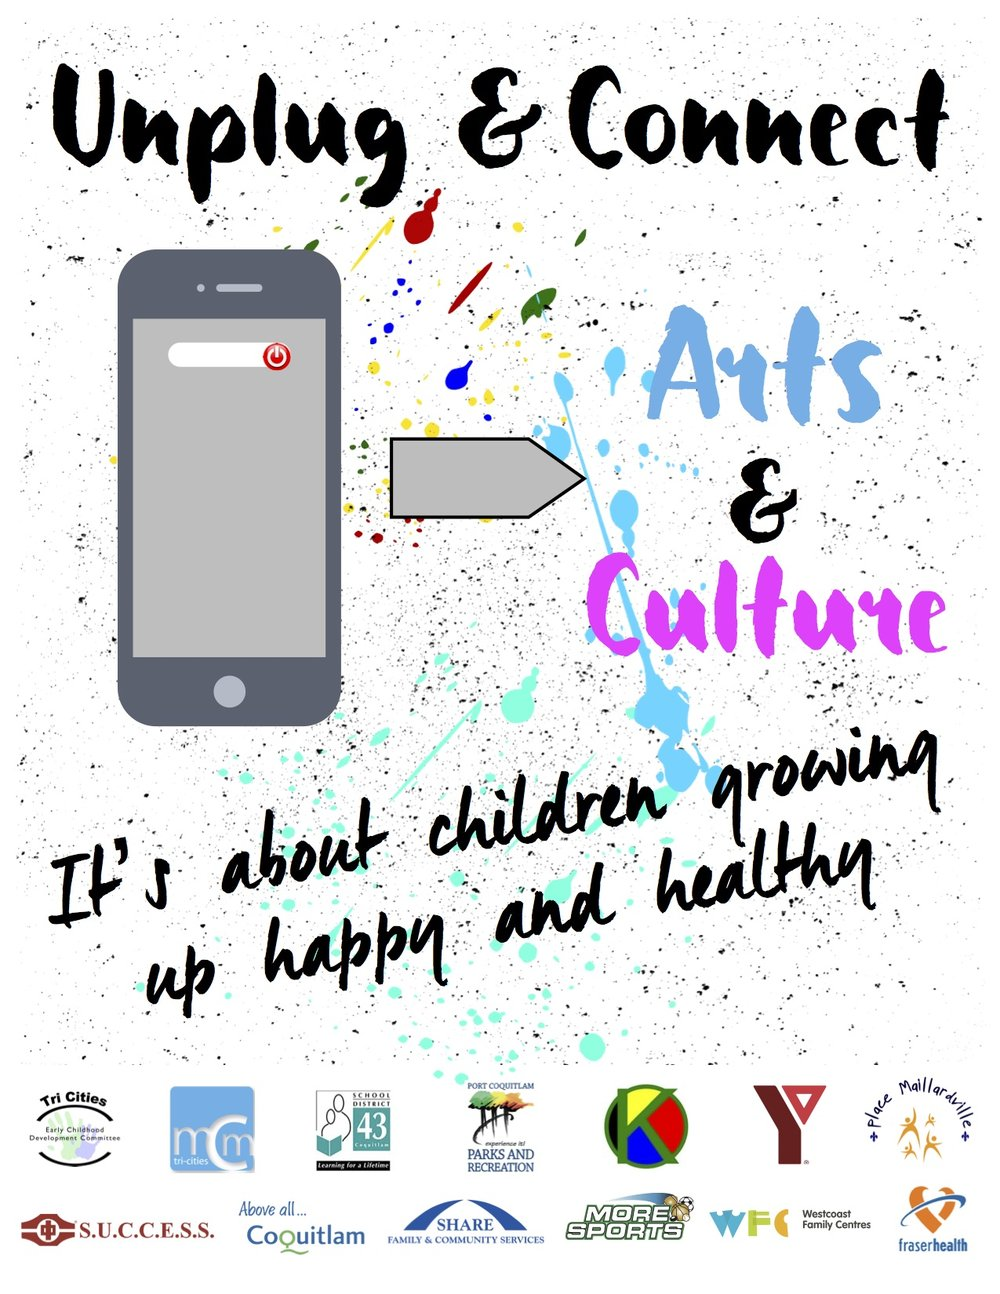 Click  here  to learn more about the importance of connecting to arts and culture.